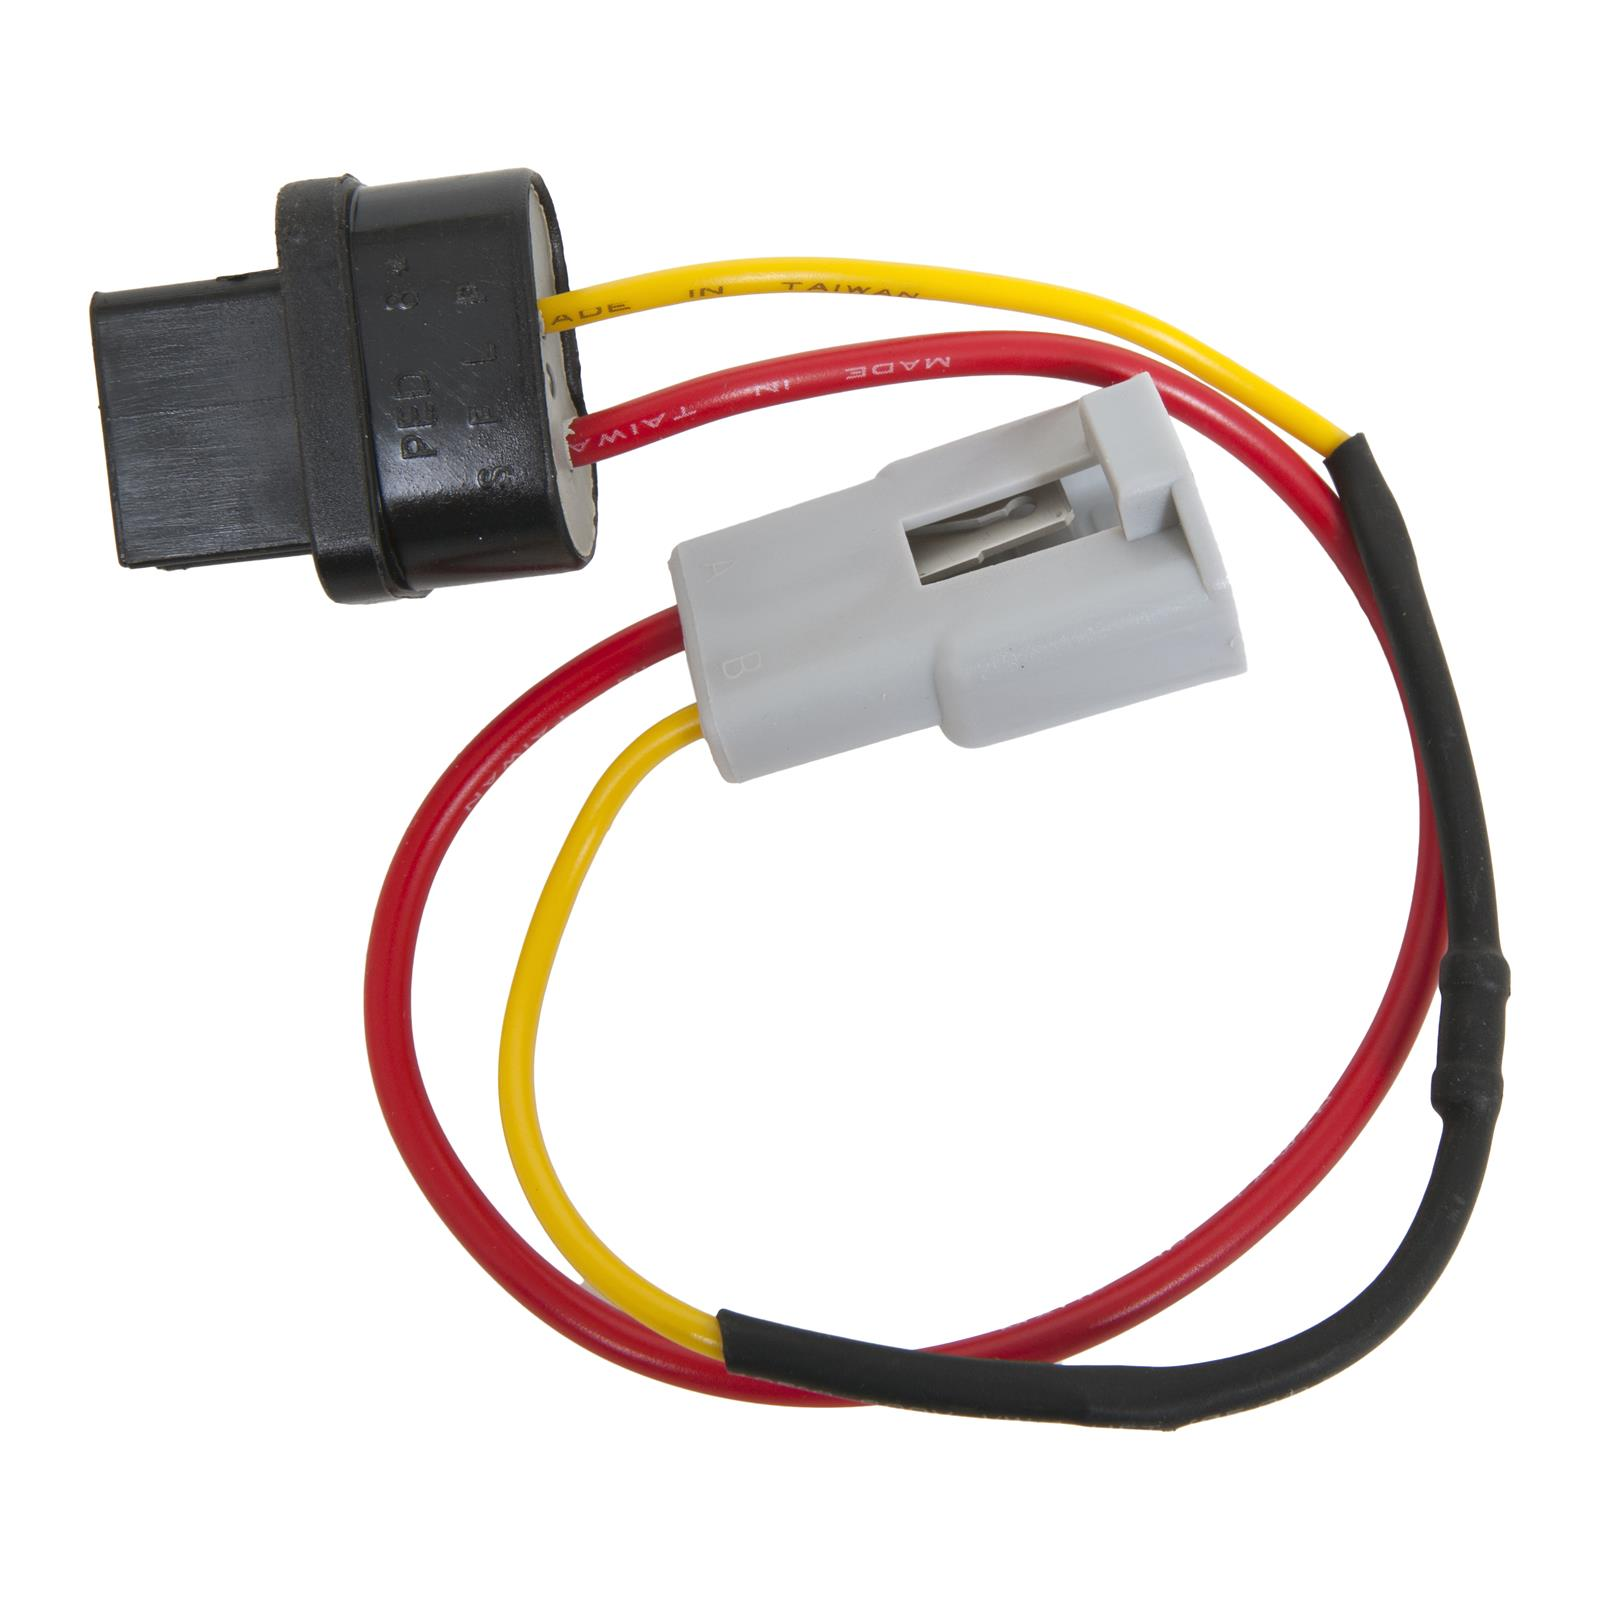 hight resolution of acdelco replacement wiring harness connectors 88861073 free shipping on orders over 99 at summit racing